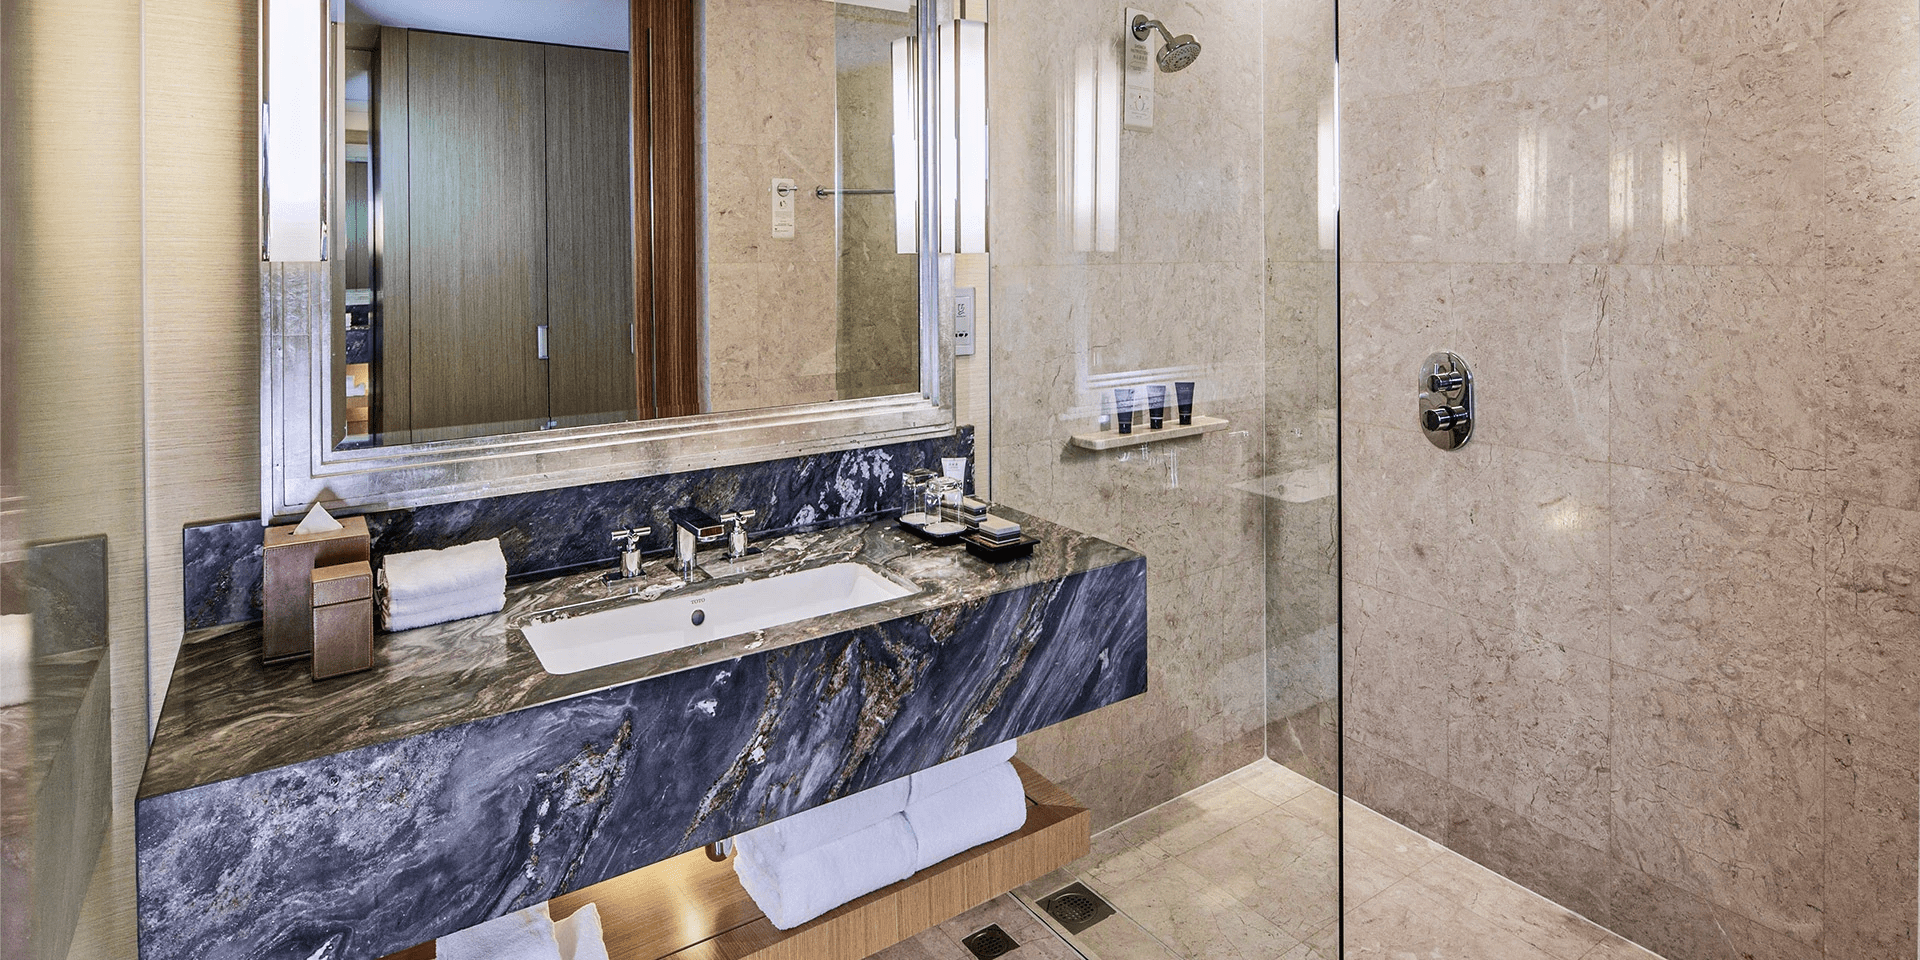 traveloka-staycation-packages - MBS Bathroom